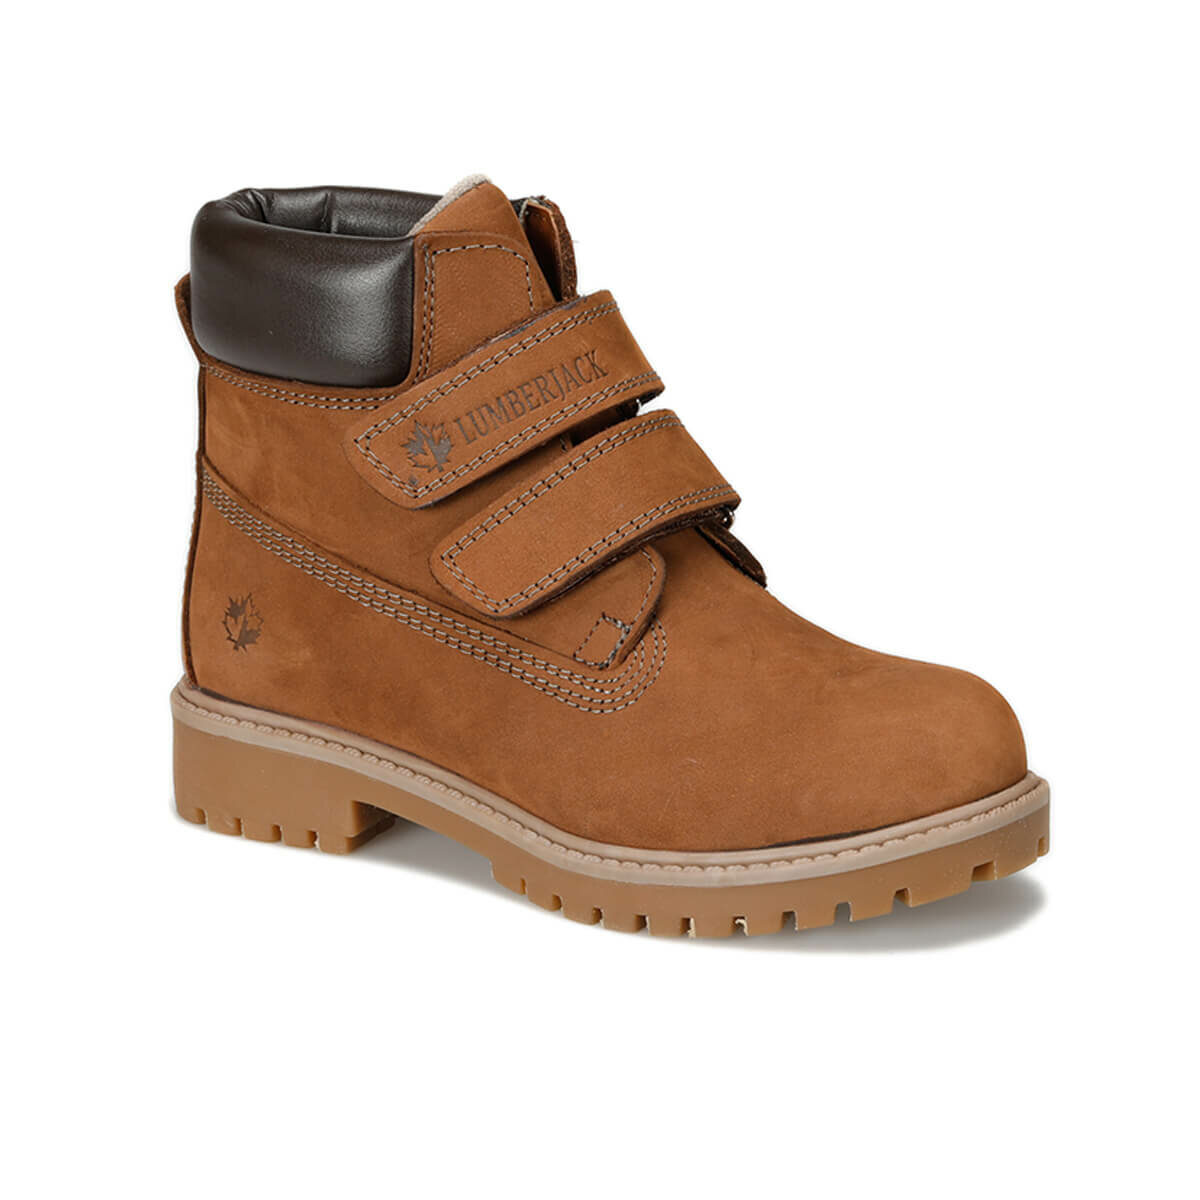 FLO RIVER 9PR Cinnamon Male Child Boots LUMBERJACK